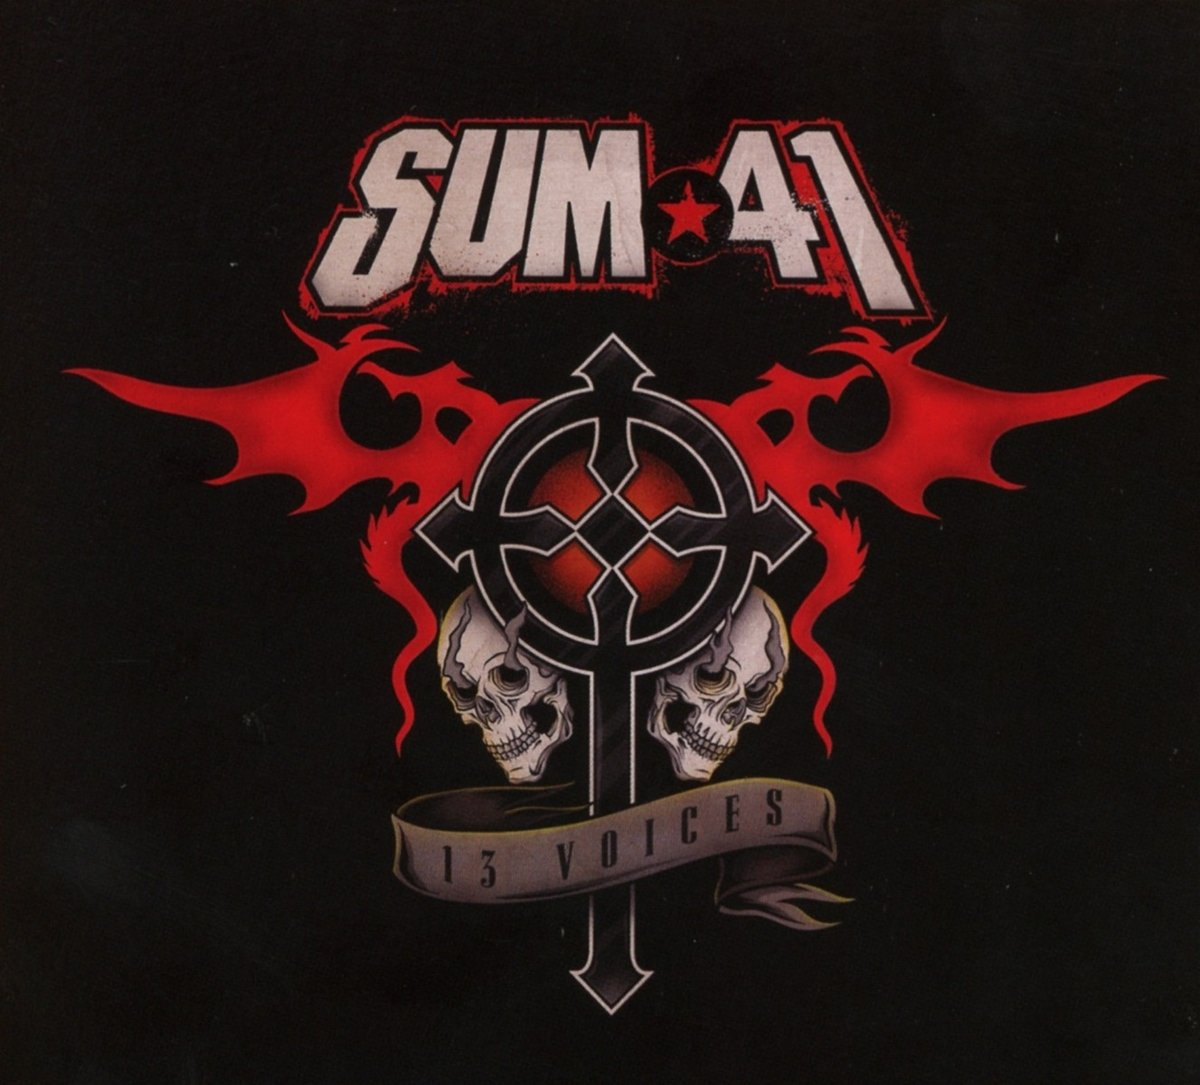 CD : Sum 41 - 13 Voices (Digital Download Card)